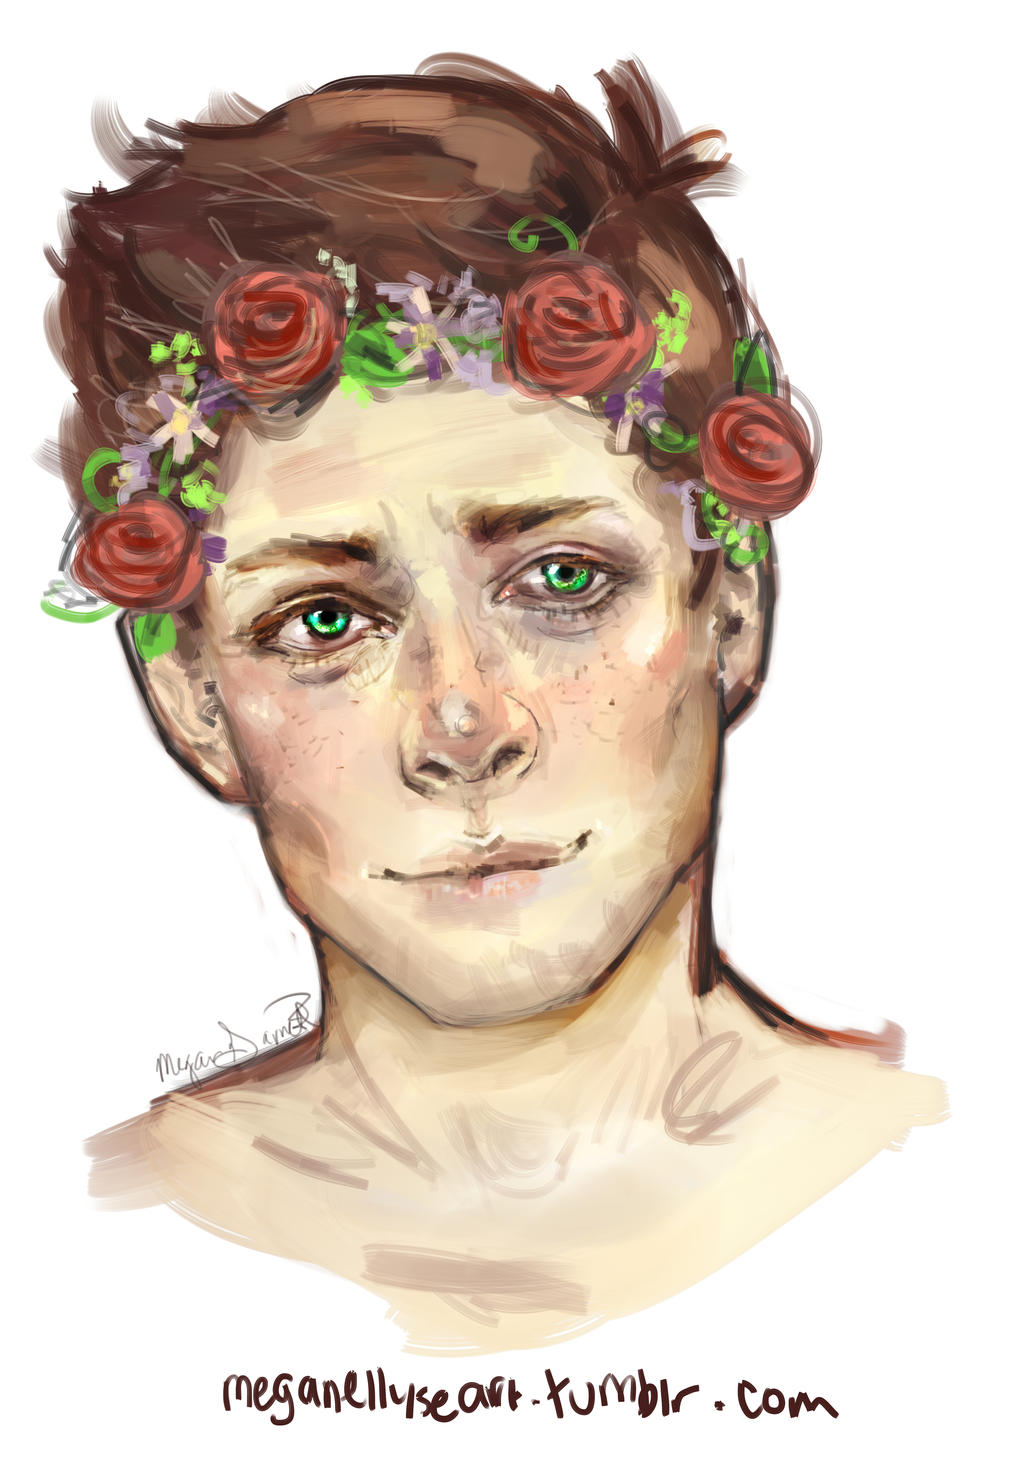 Girl with flower crown drawing - photo#23